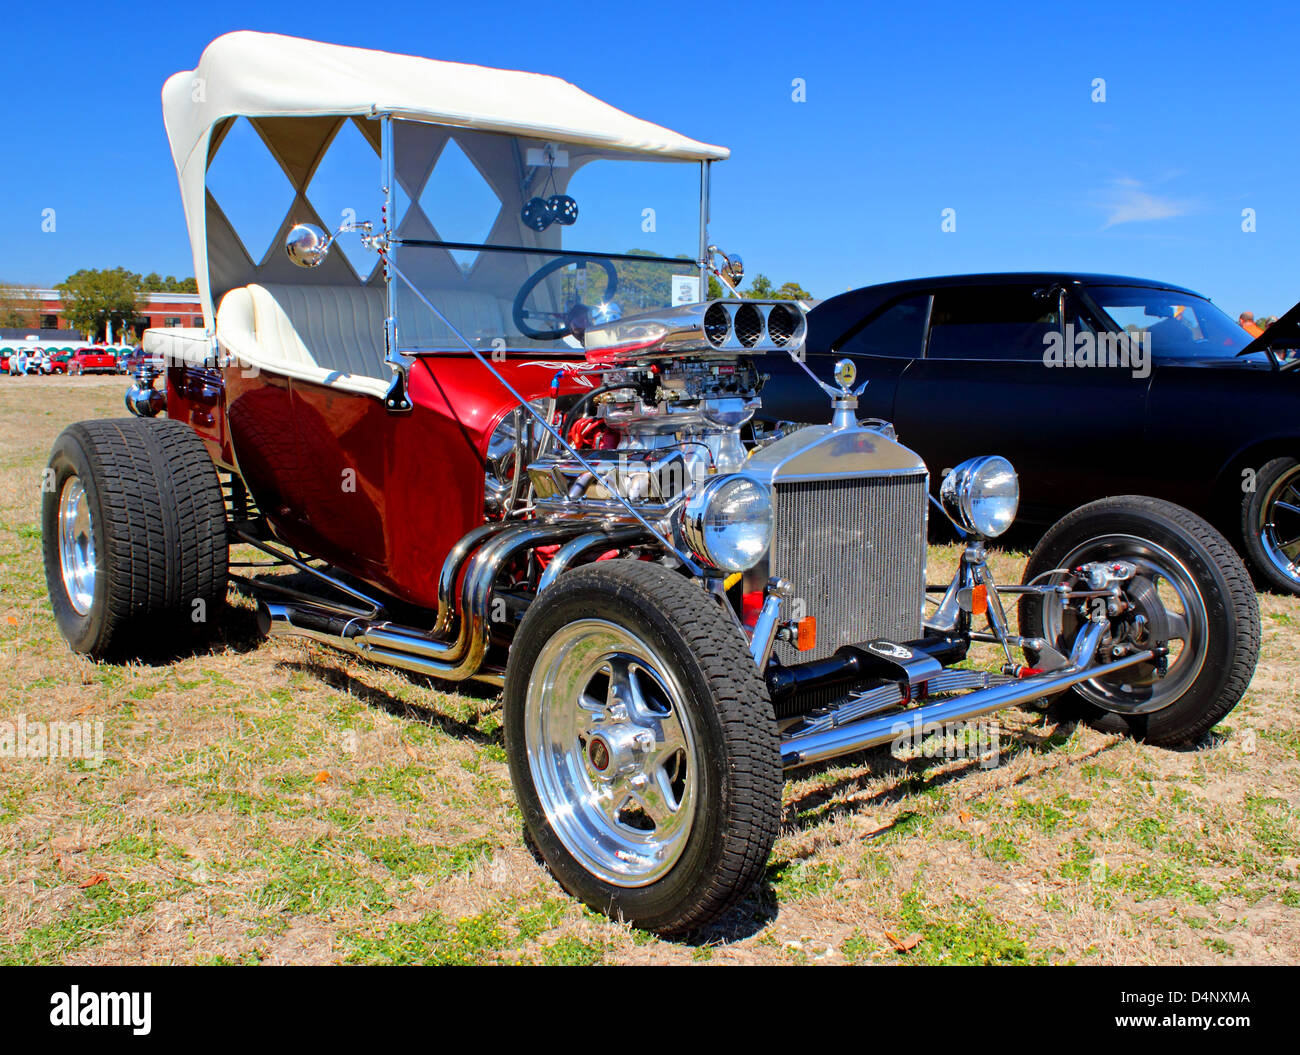 Vintage Hot Rod Stock Photos & Vintage Hot Rod Stock Images - Alamy